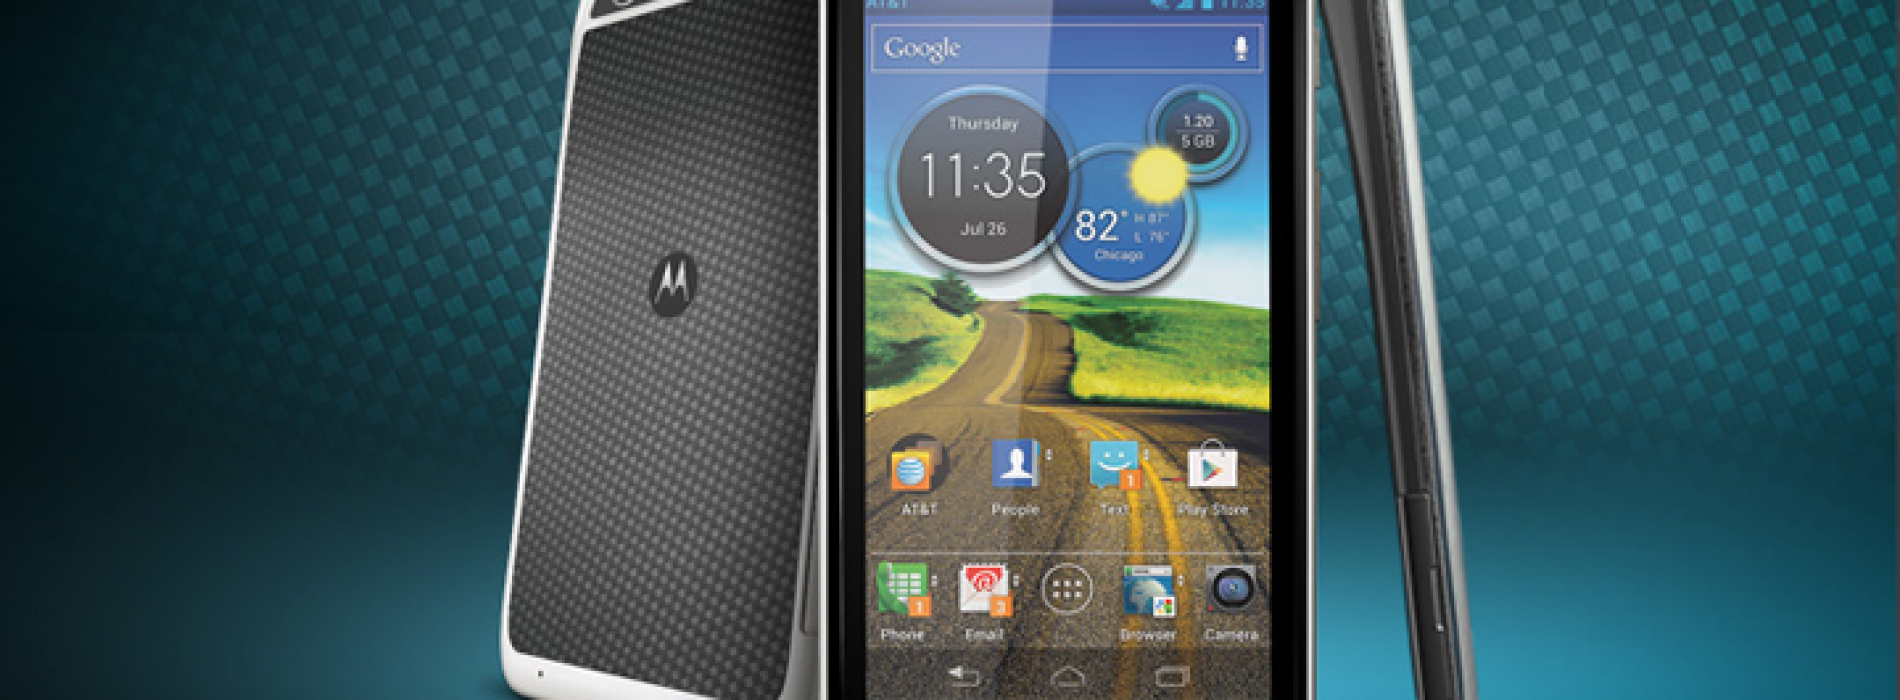 AT&T announces Android 4.1 Jelly Bean for Motorola Atrix HD